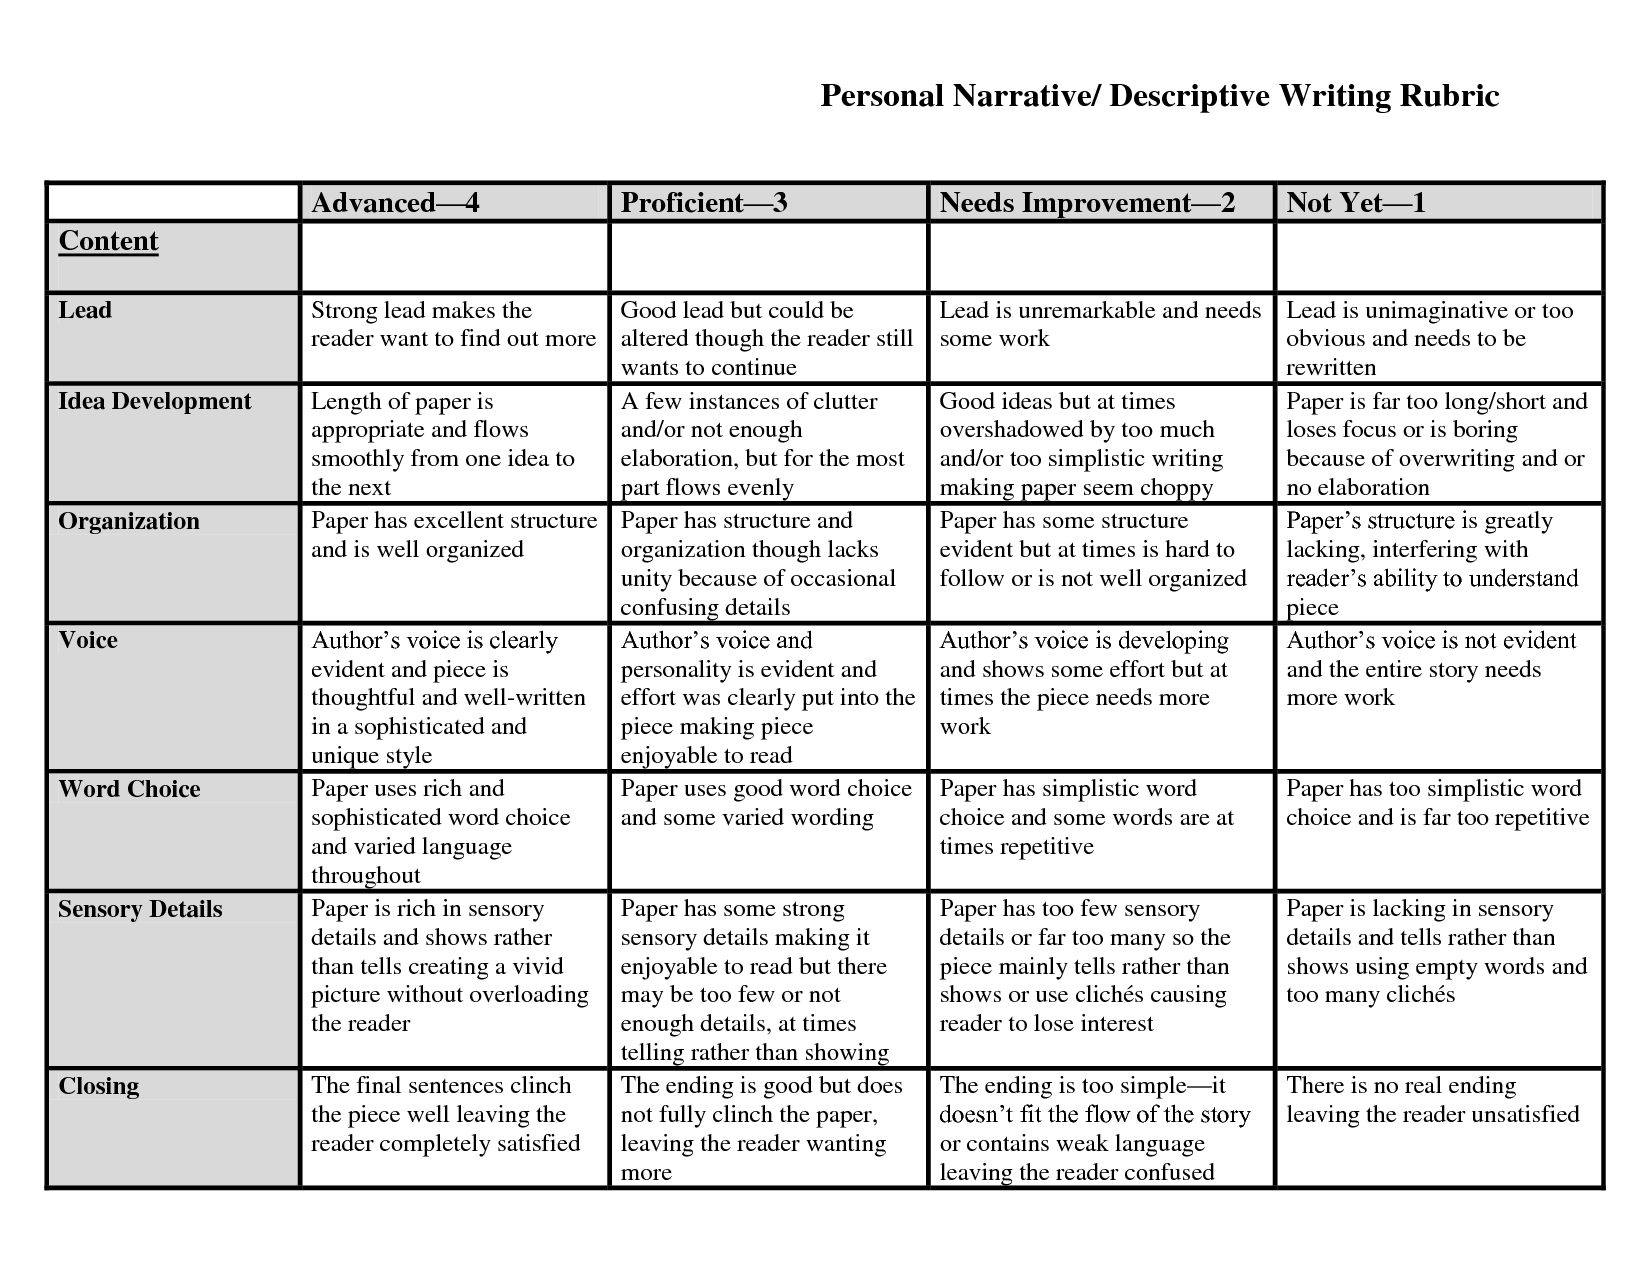 essay rubric checklist Peer editing checklist name _____ essay topic _____ 1 organization introduction introduction begins with an attention grabber or hook.